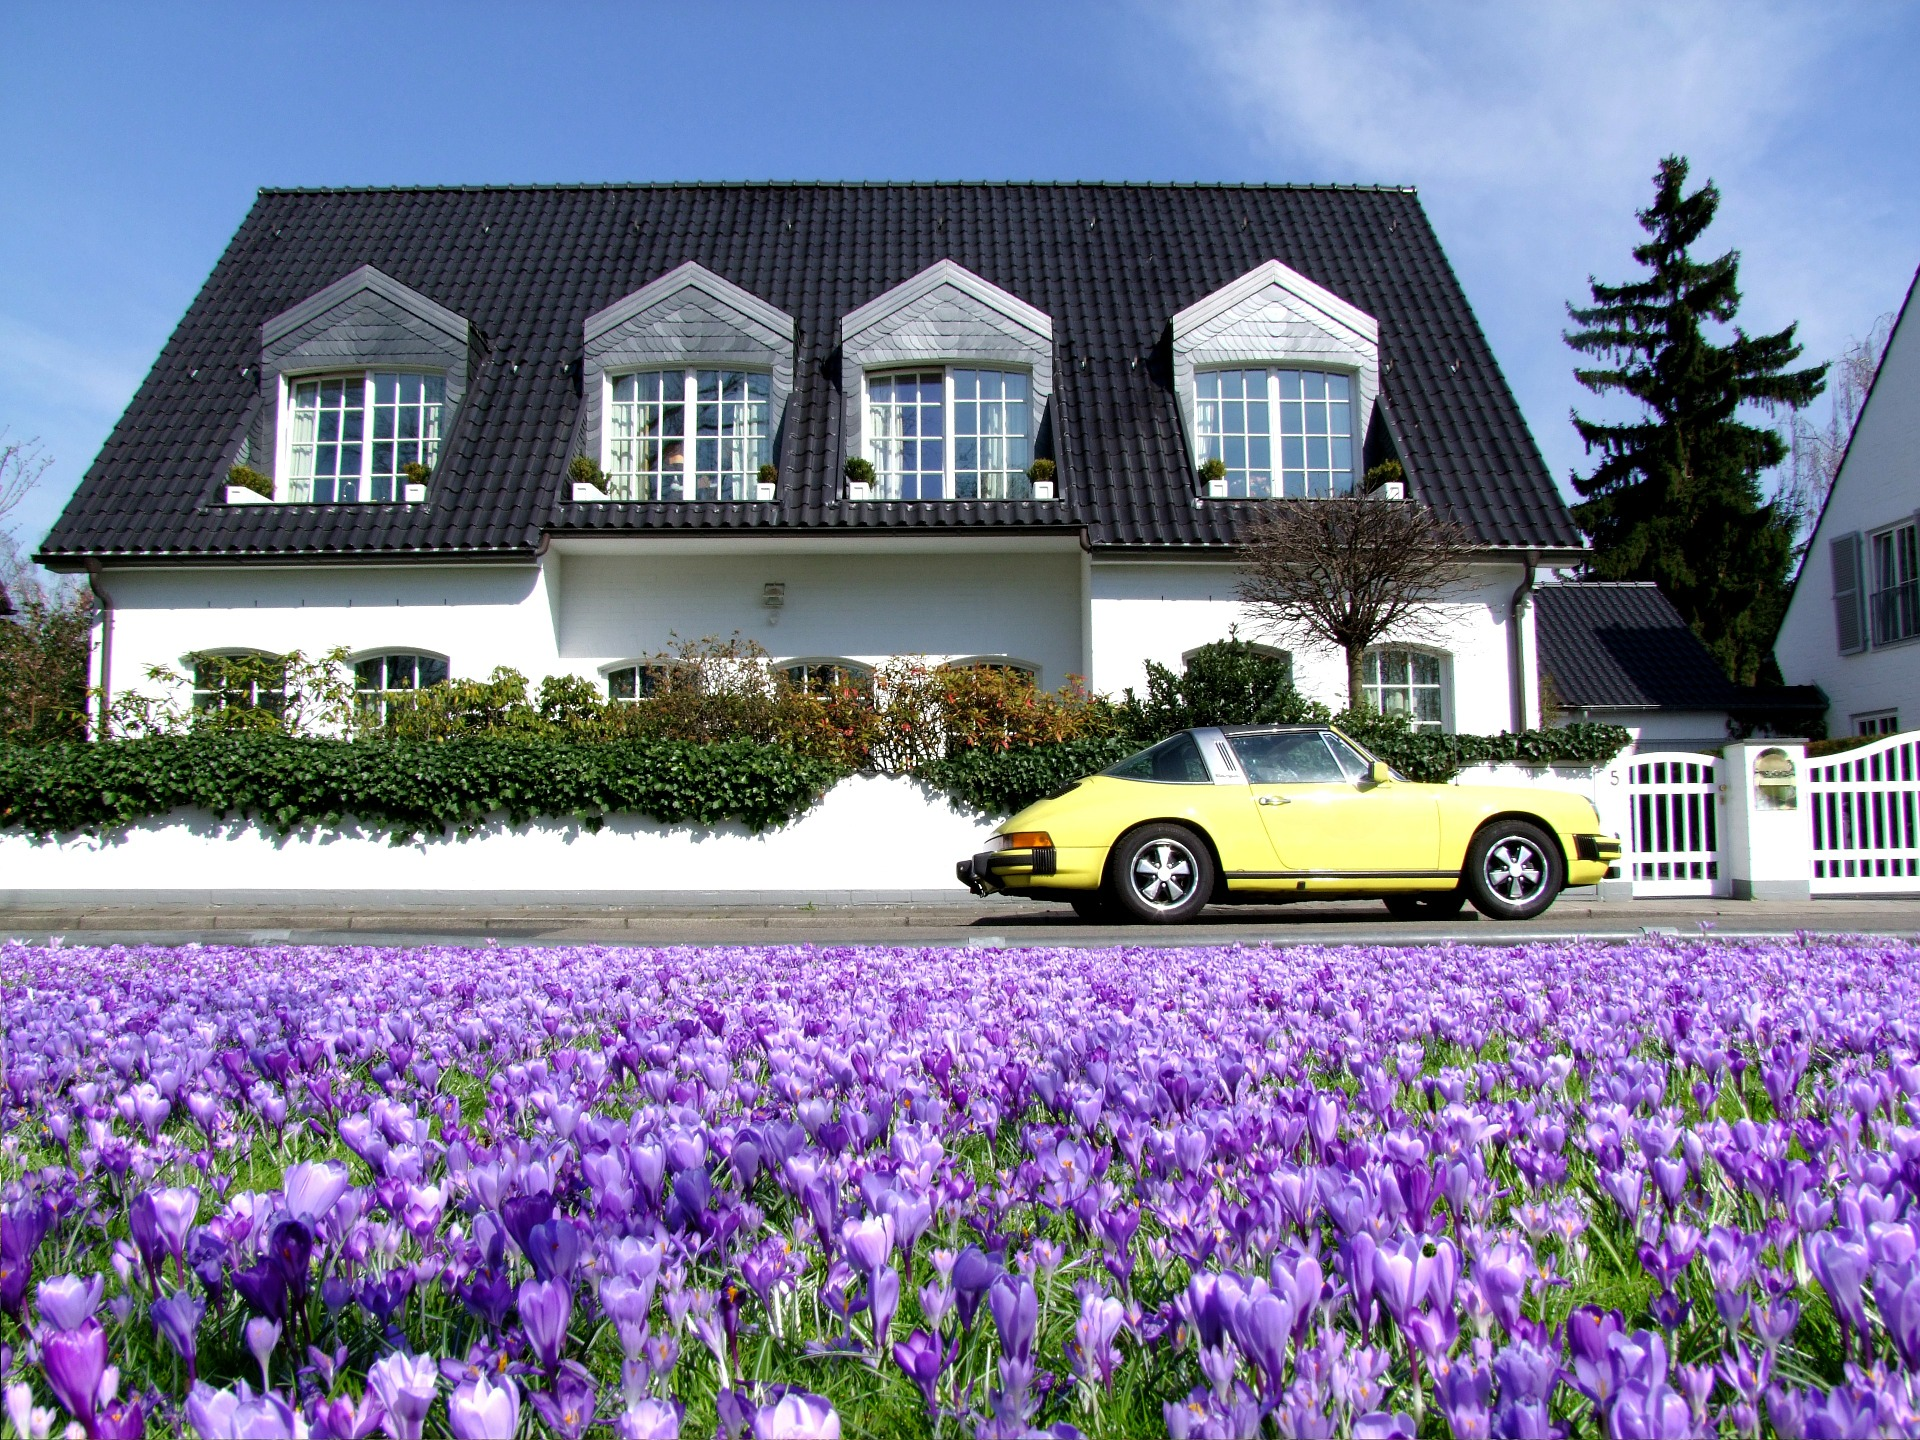 Home Insurance, Affordable Home Insurance